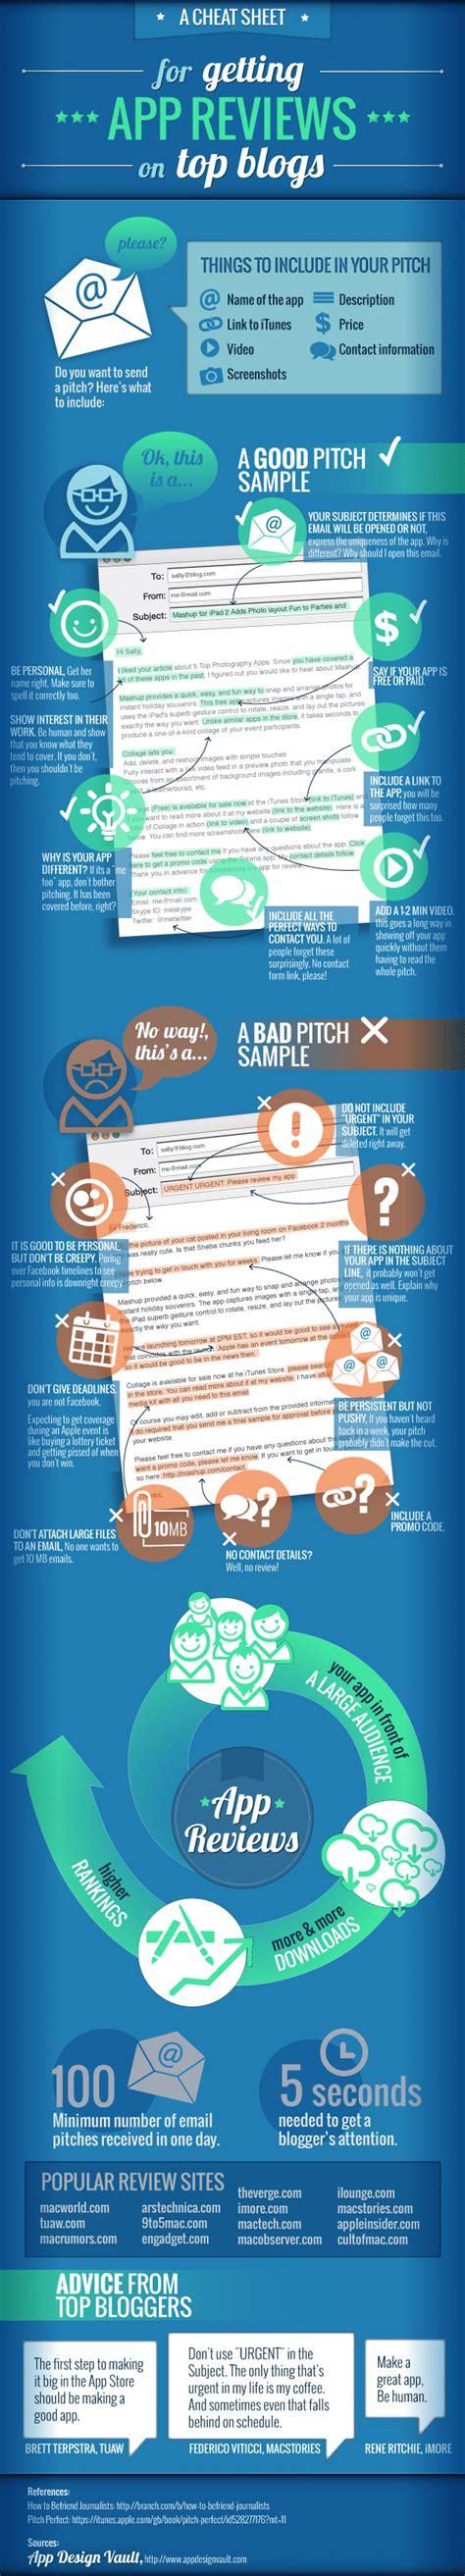 best cheat sheet for getting app reviews infographic